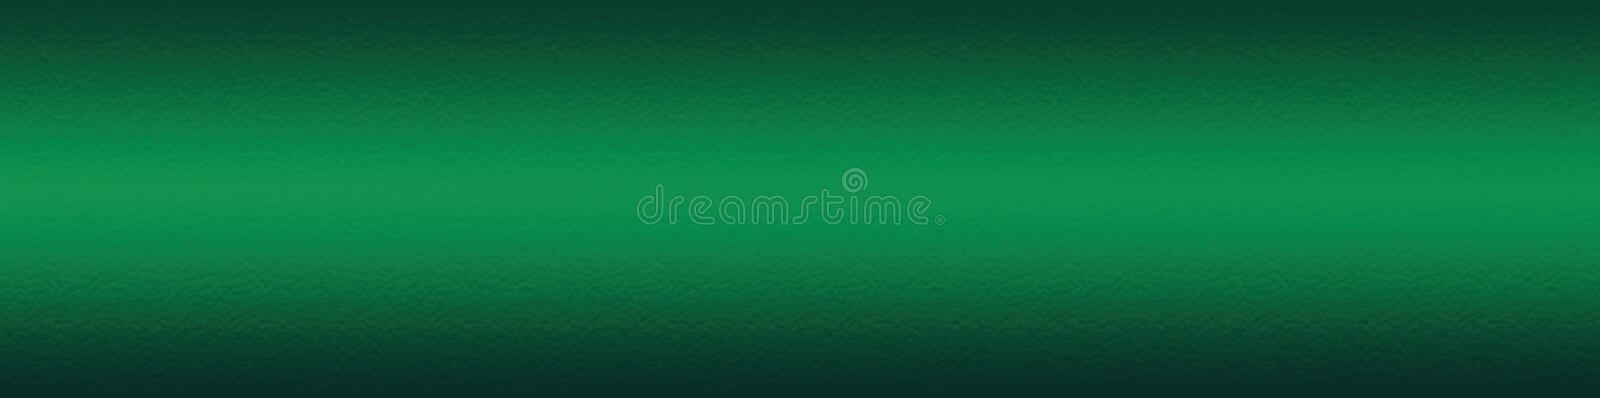 Green web site header or footer background. Abstract design template stock illustration